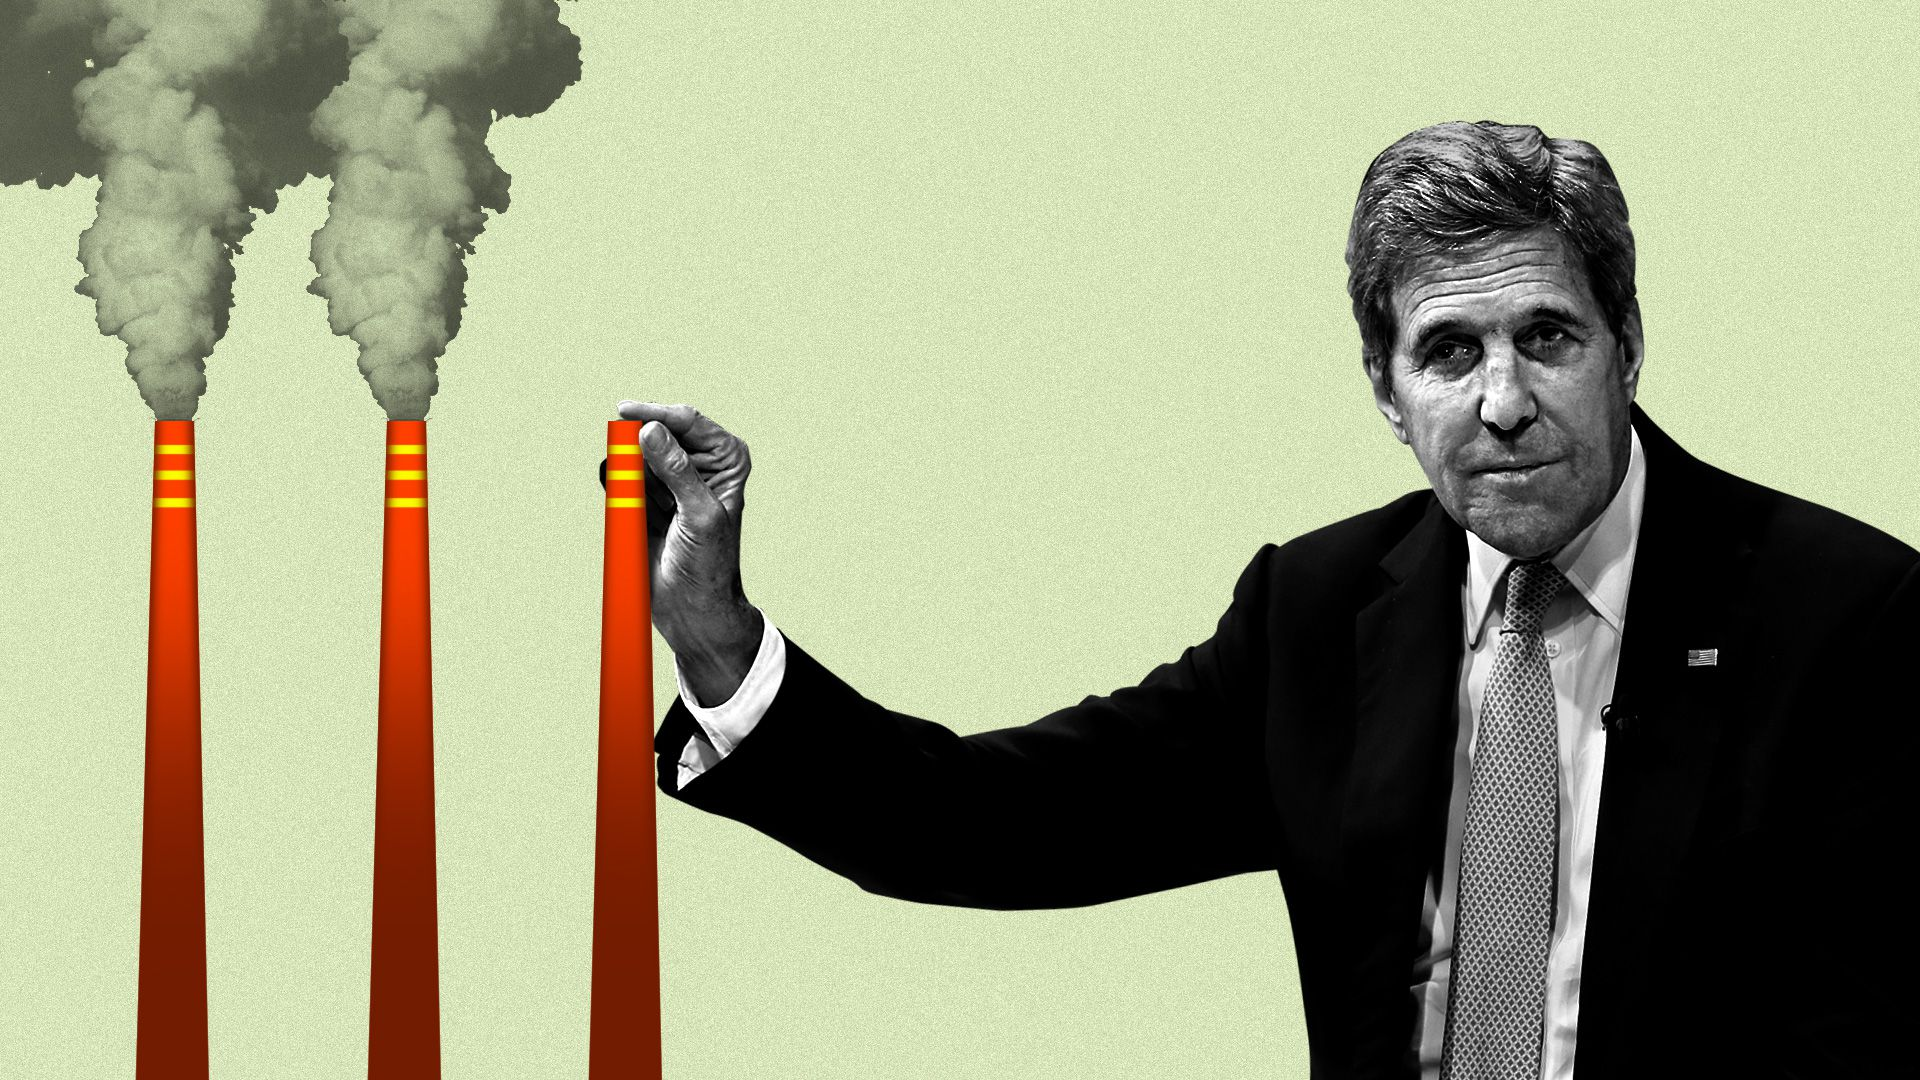 John Kerry plugging a smokestack with his finger